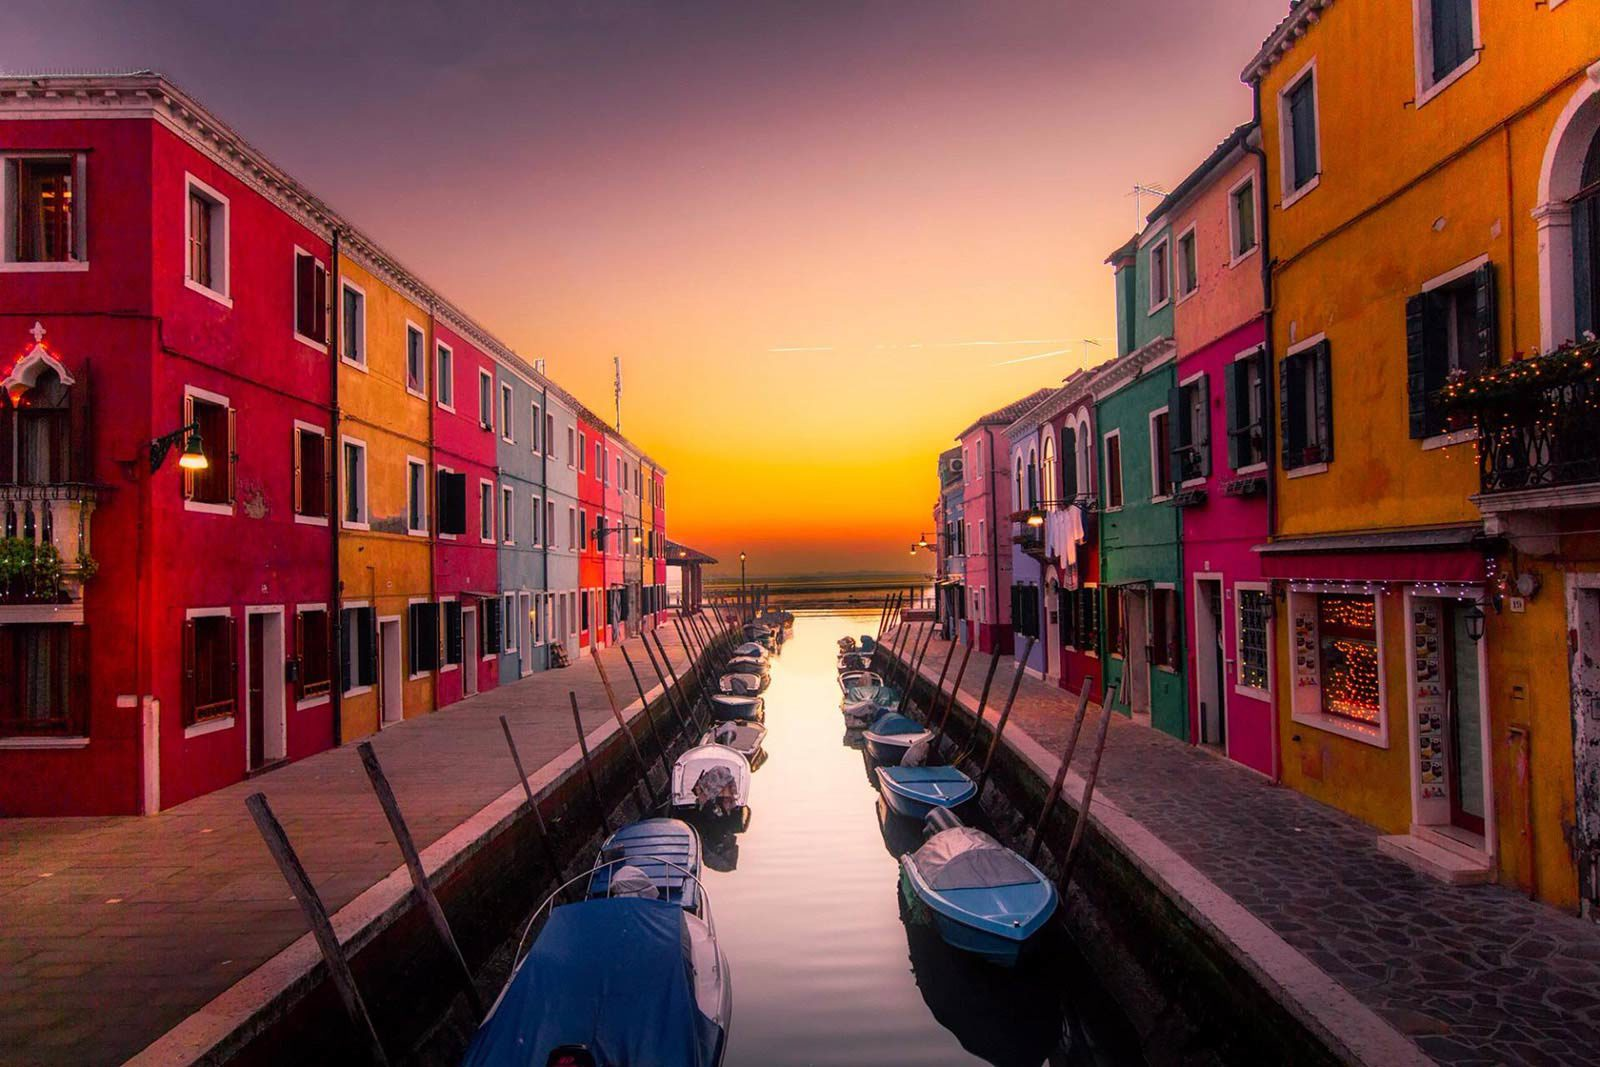 Rows of coloured houses next to canals with boats and sunset in distance.